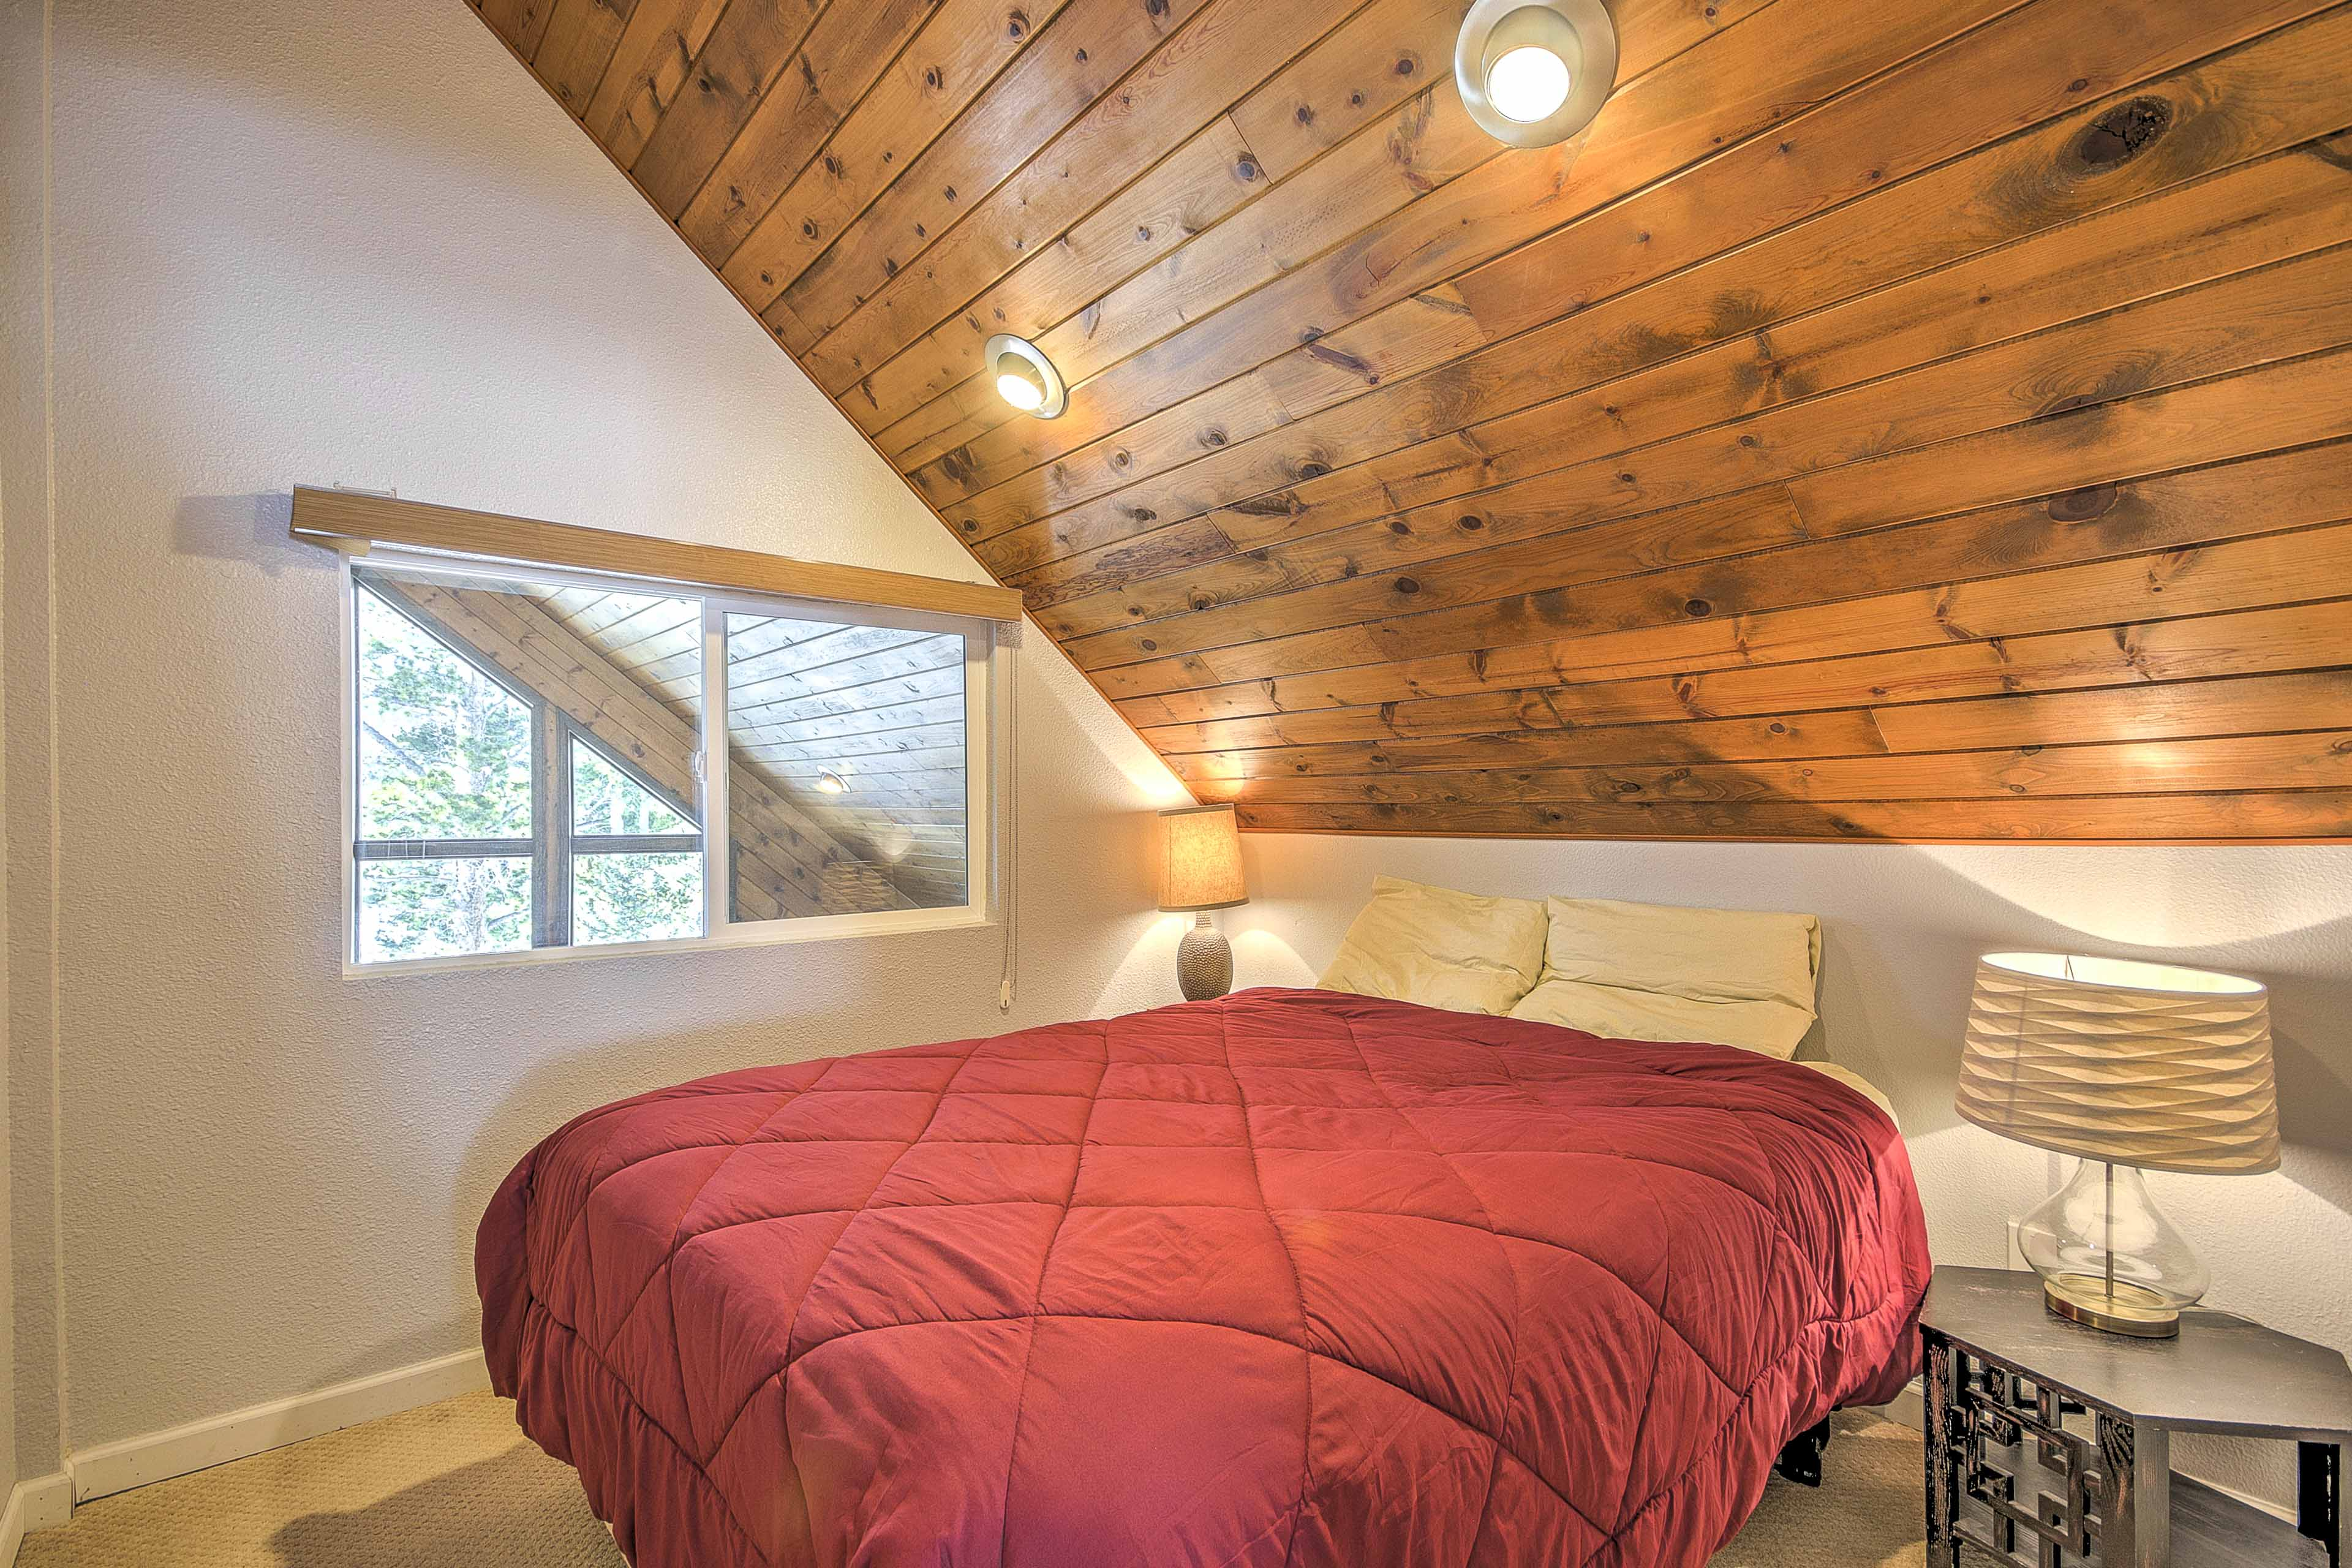 Vaulted ceilings elevate this space.